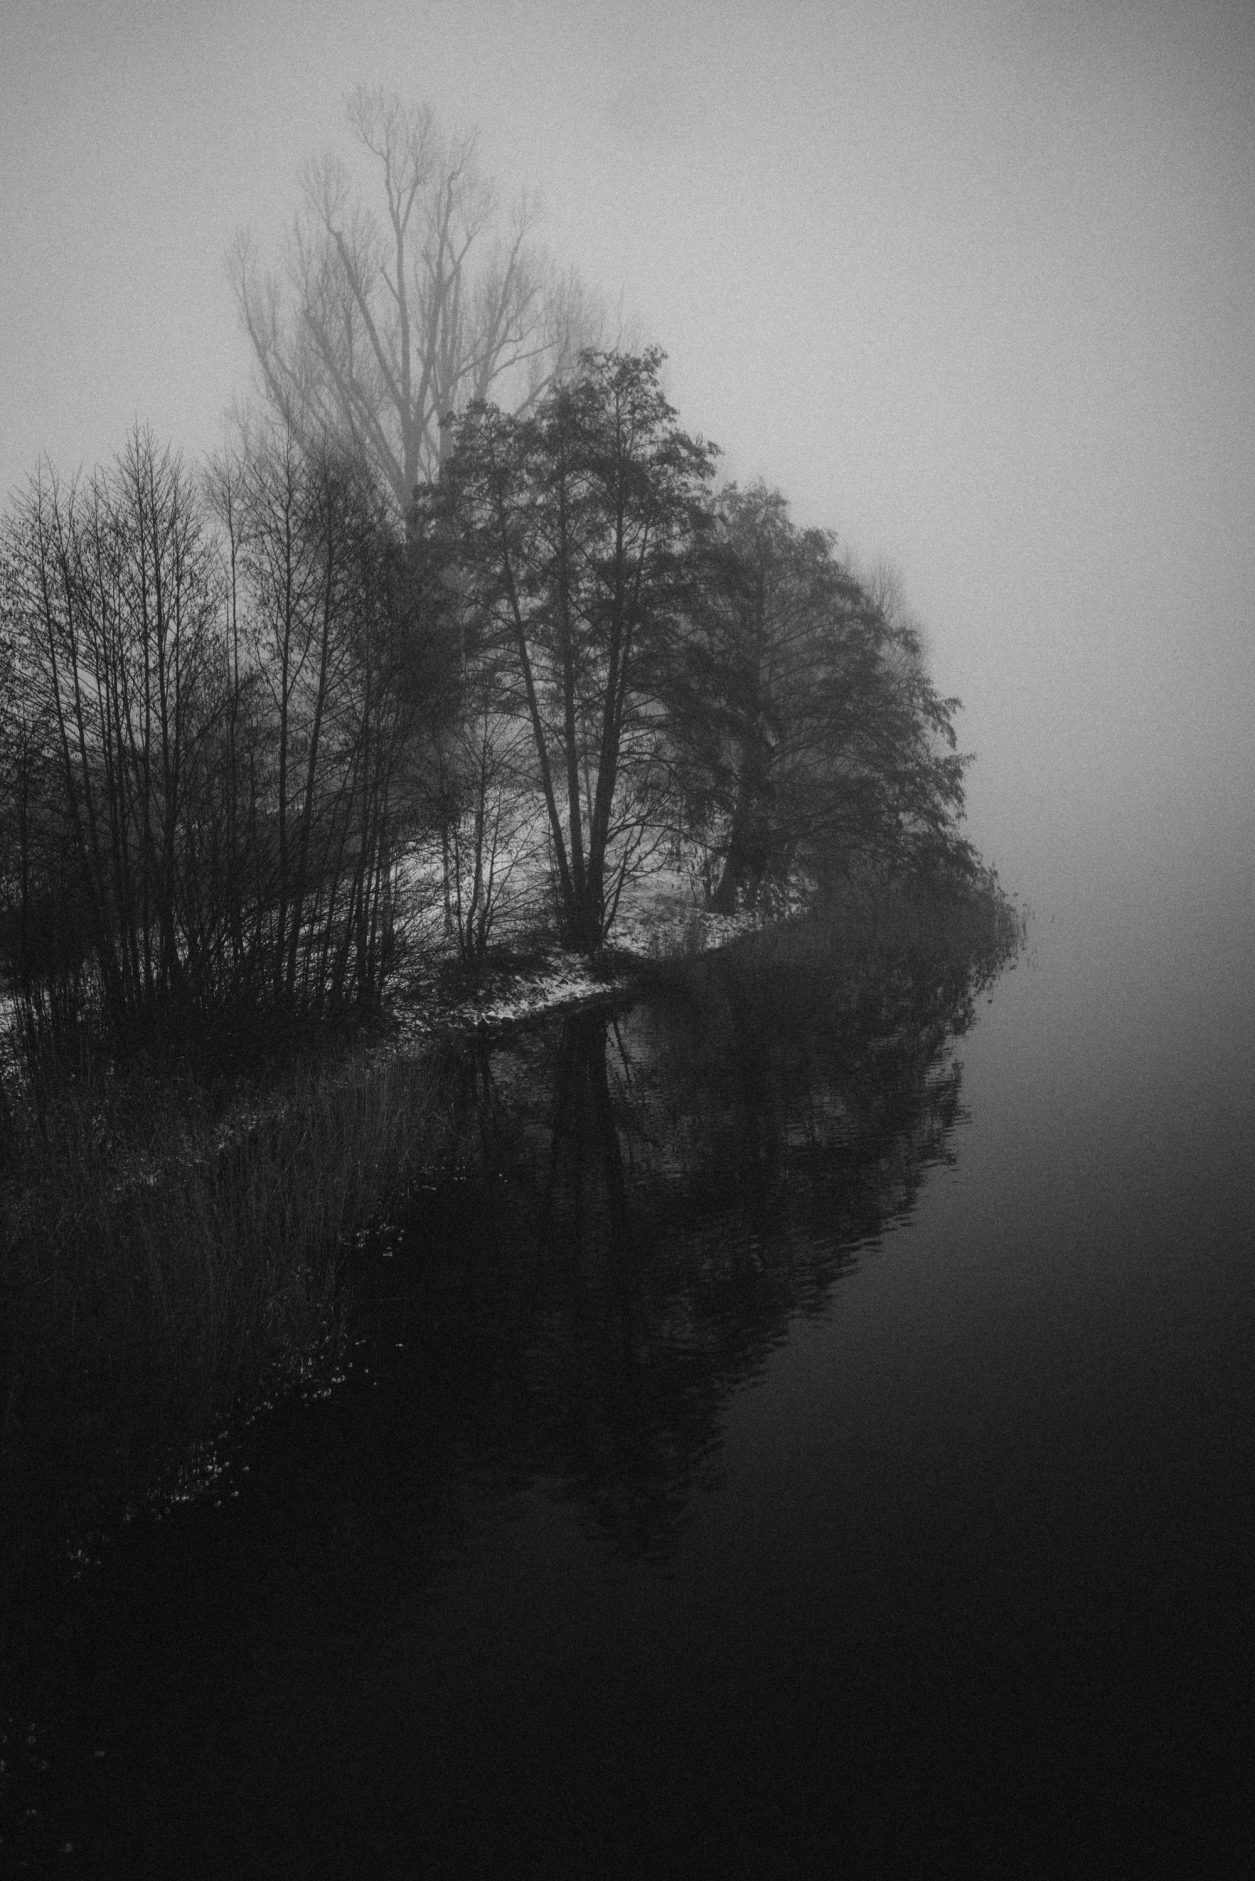 Moody Nature Photograpy | Berlin, Brandenburg | Winter